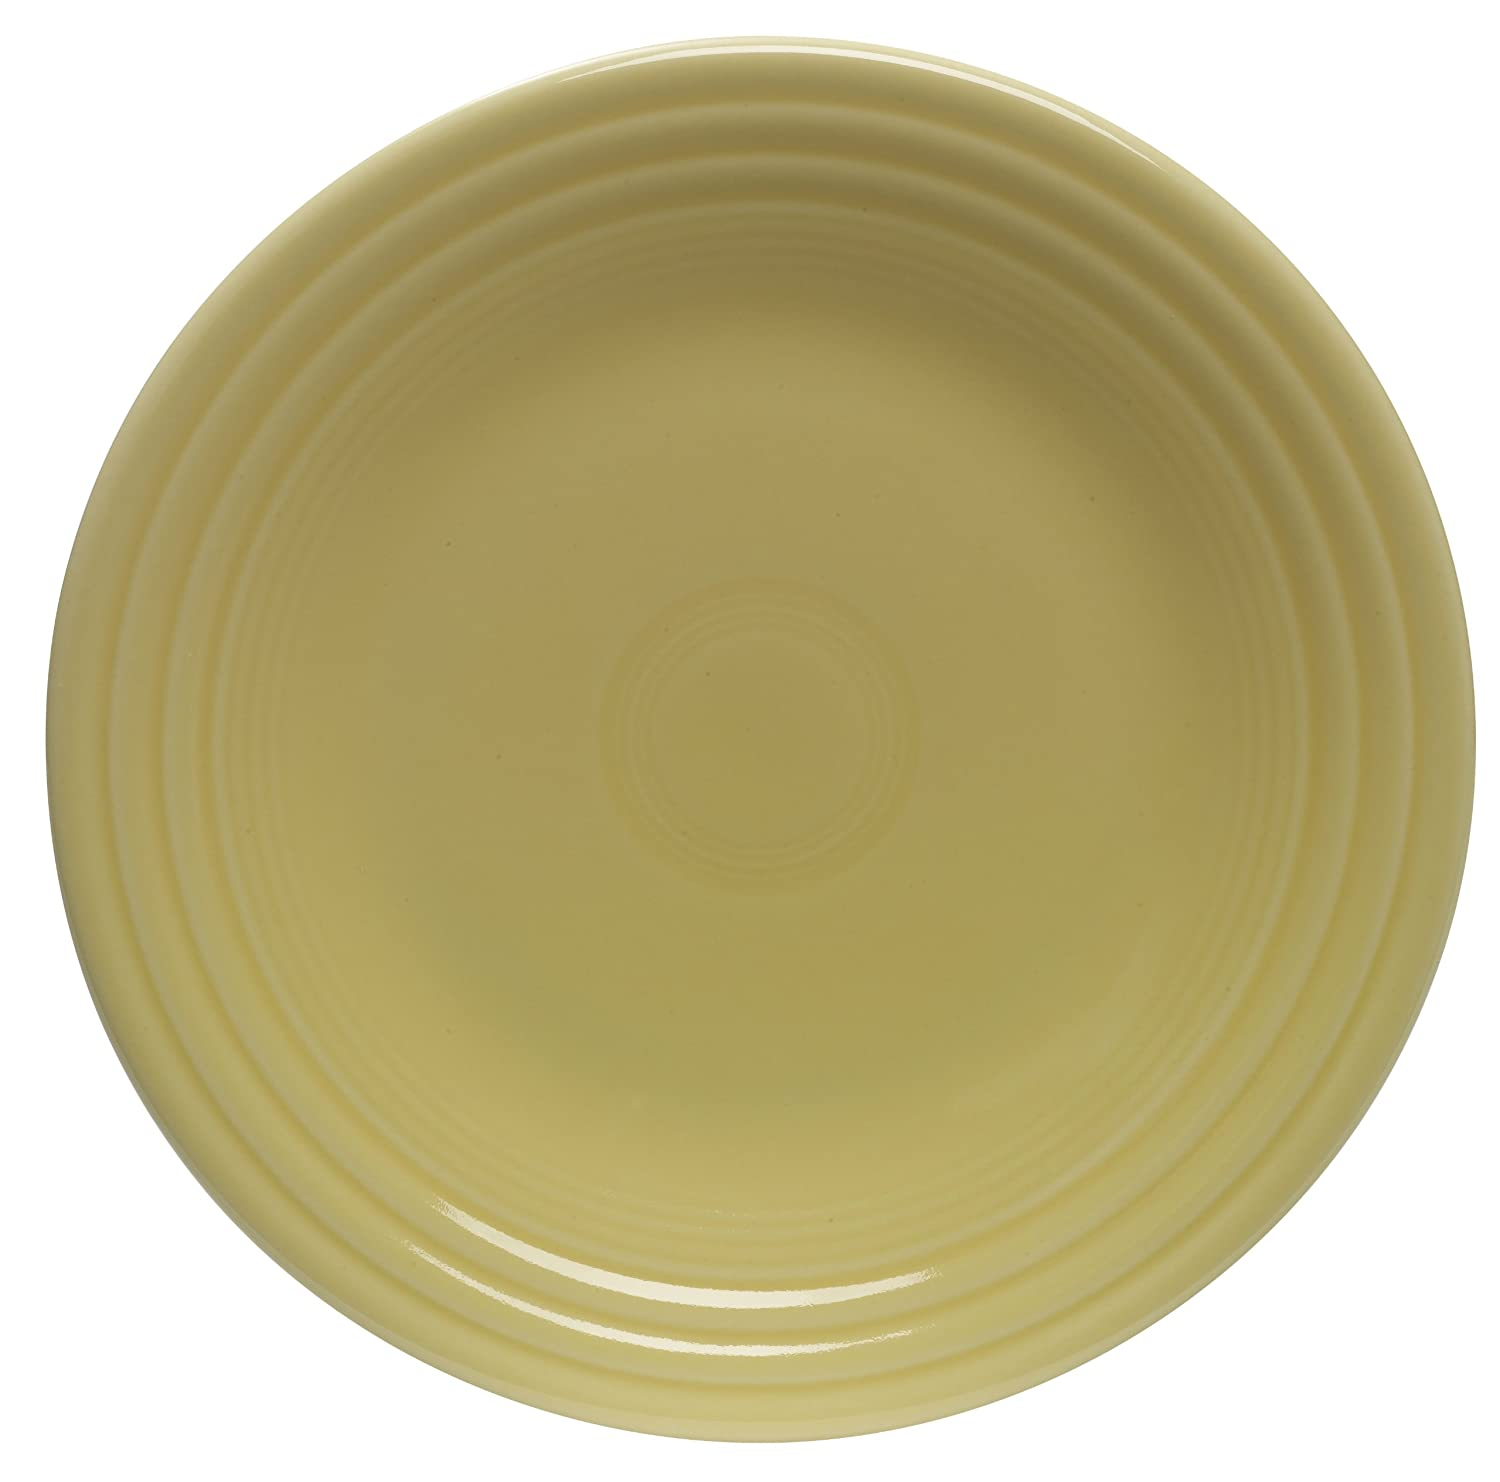 Fiesta 9-Inch Luncheon Plate, Sunflower by Homer Laughlin